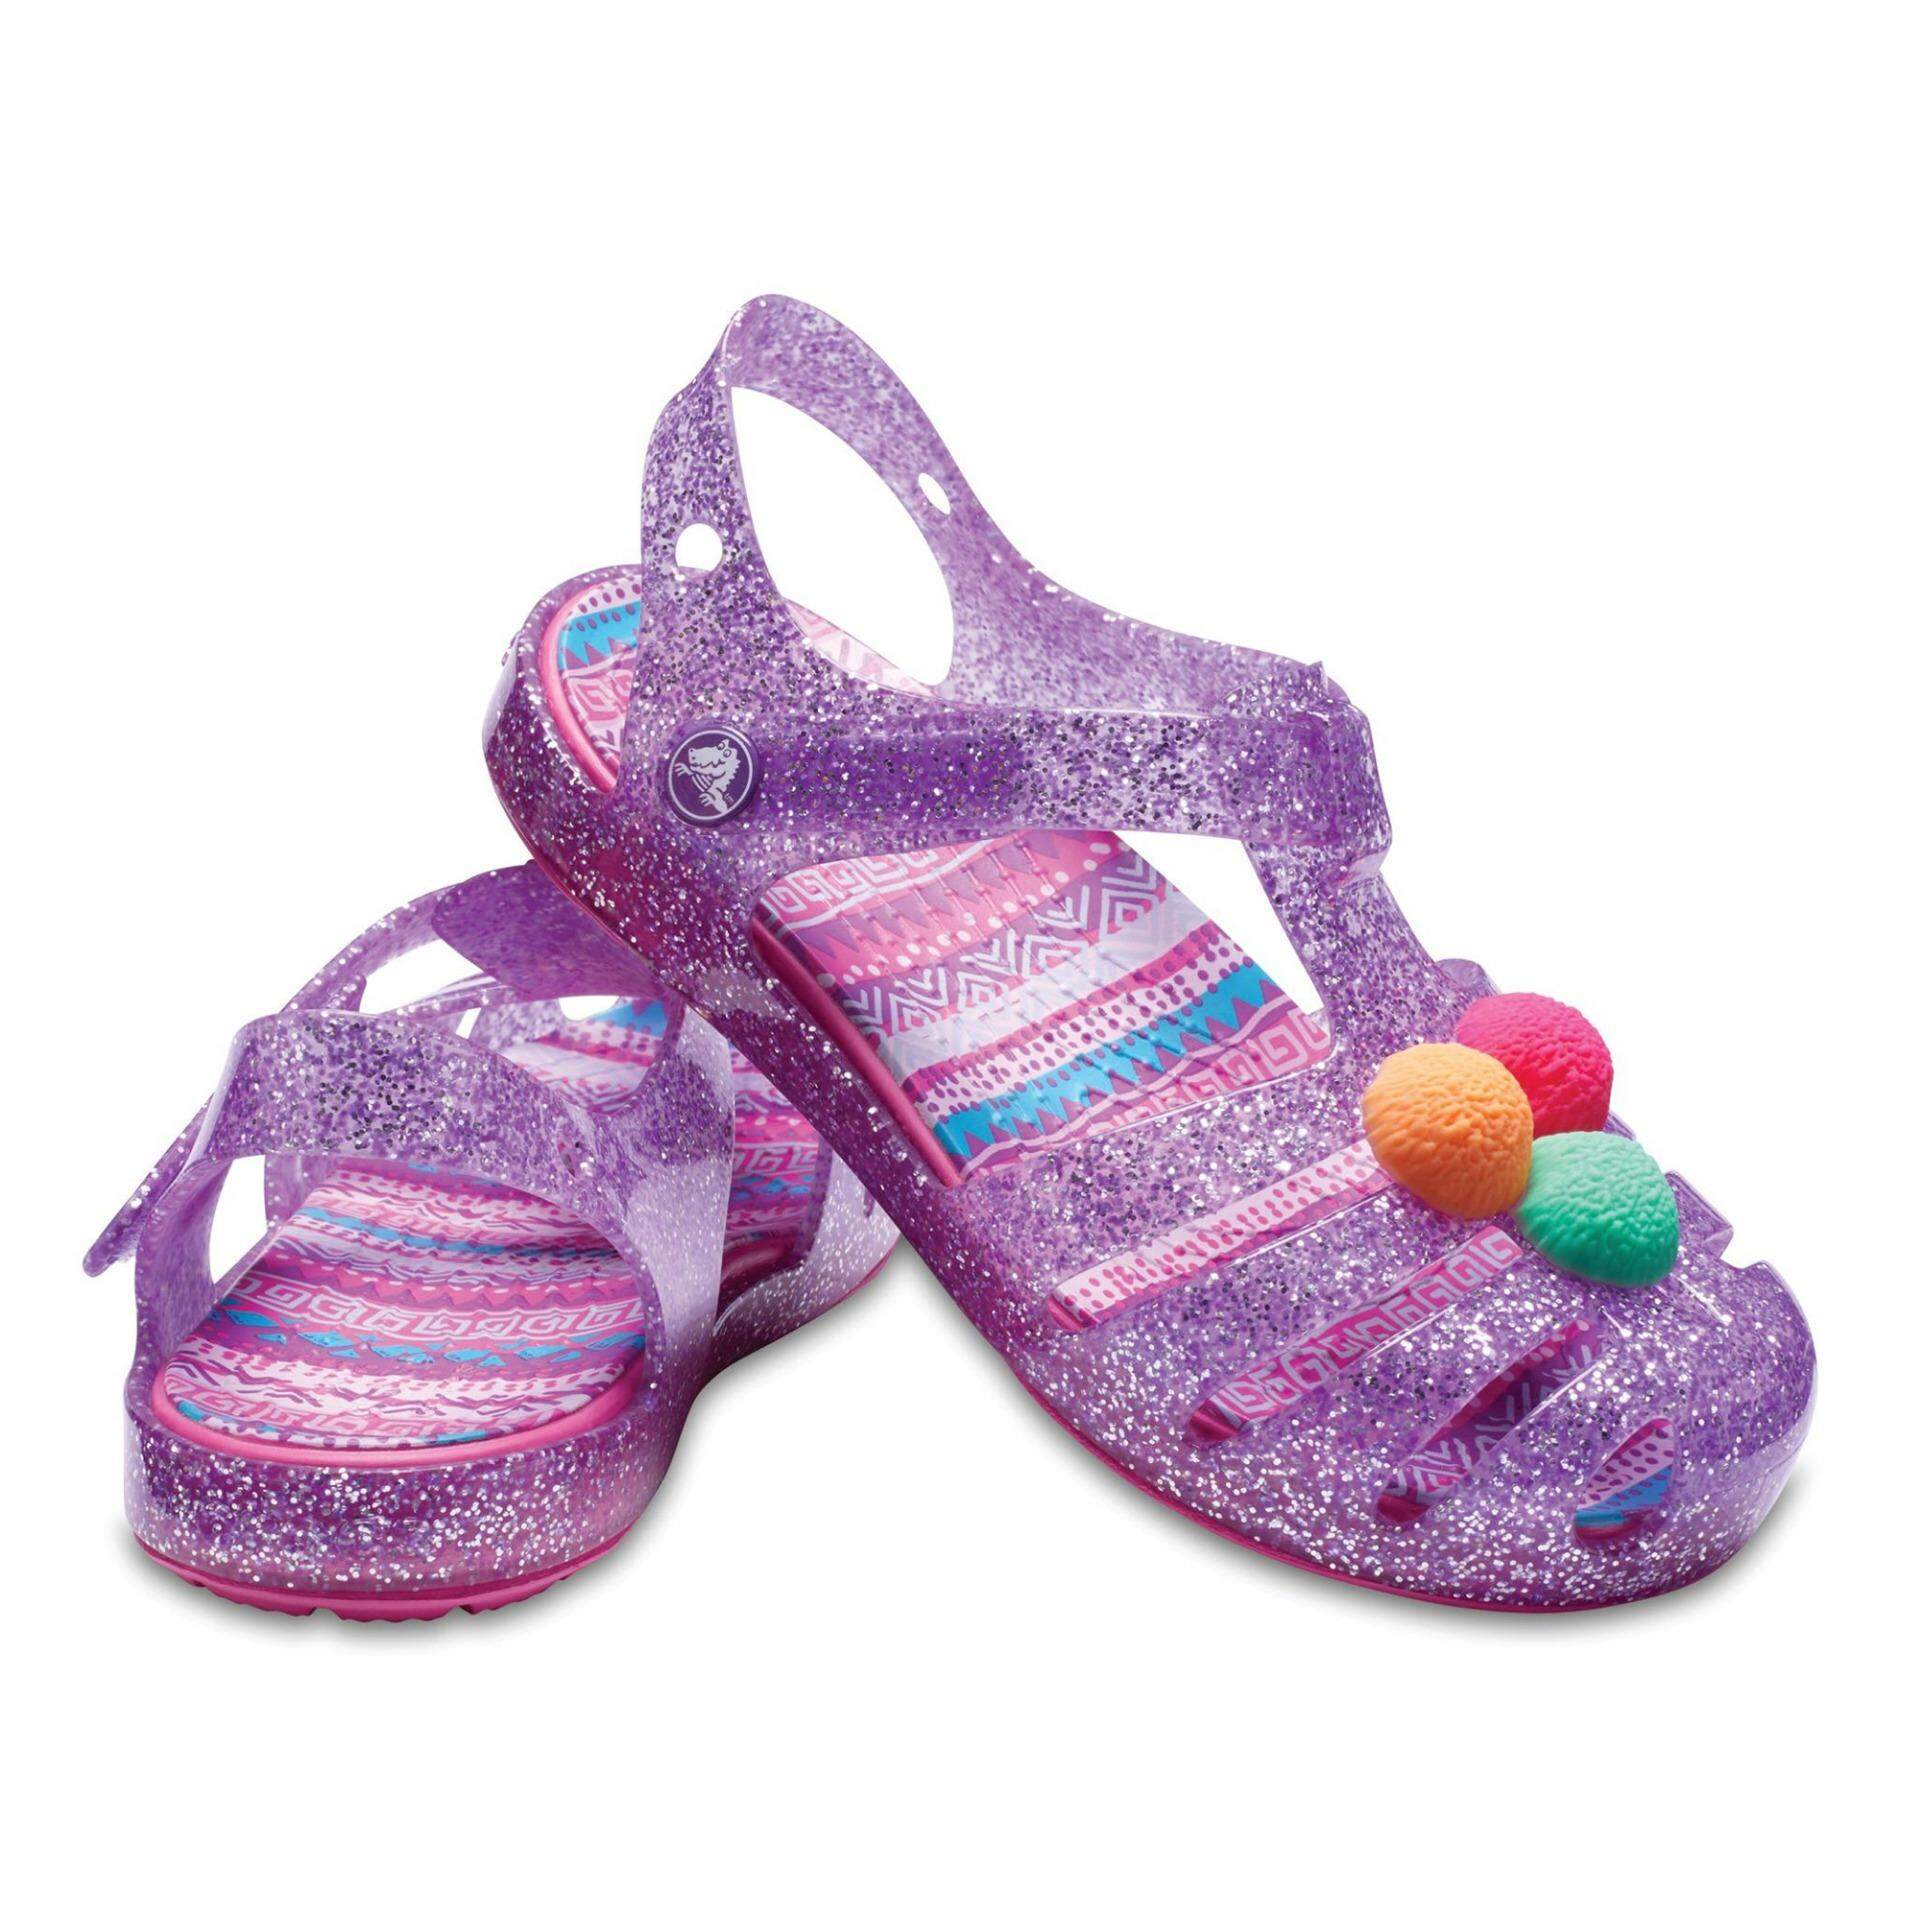 54c21656d CROCS Products for the Best Prices in Malaysia